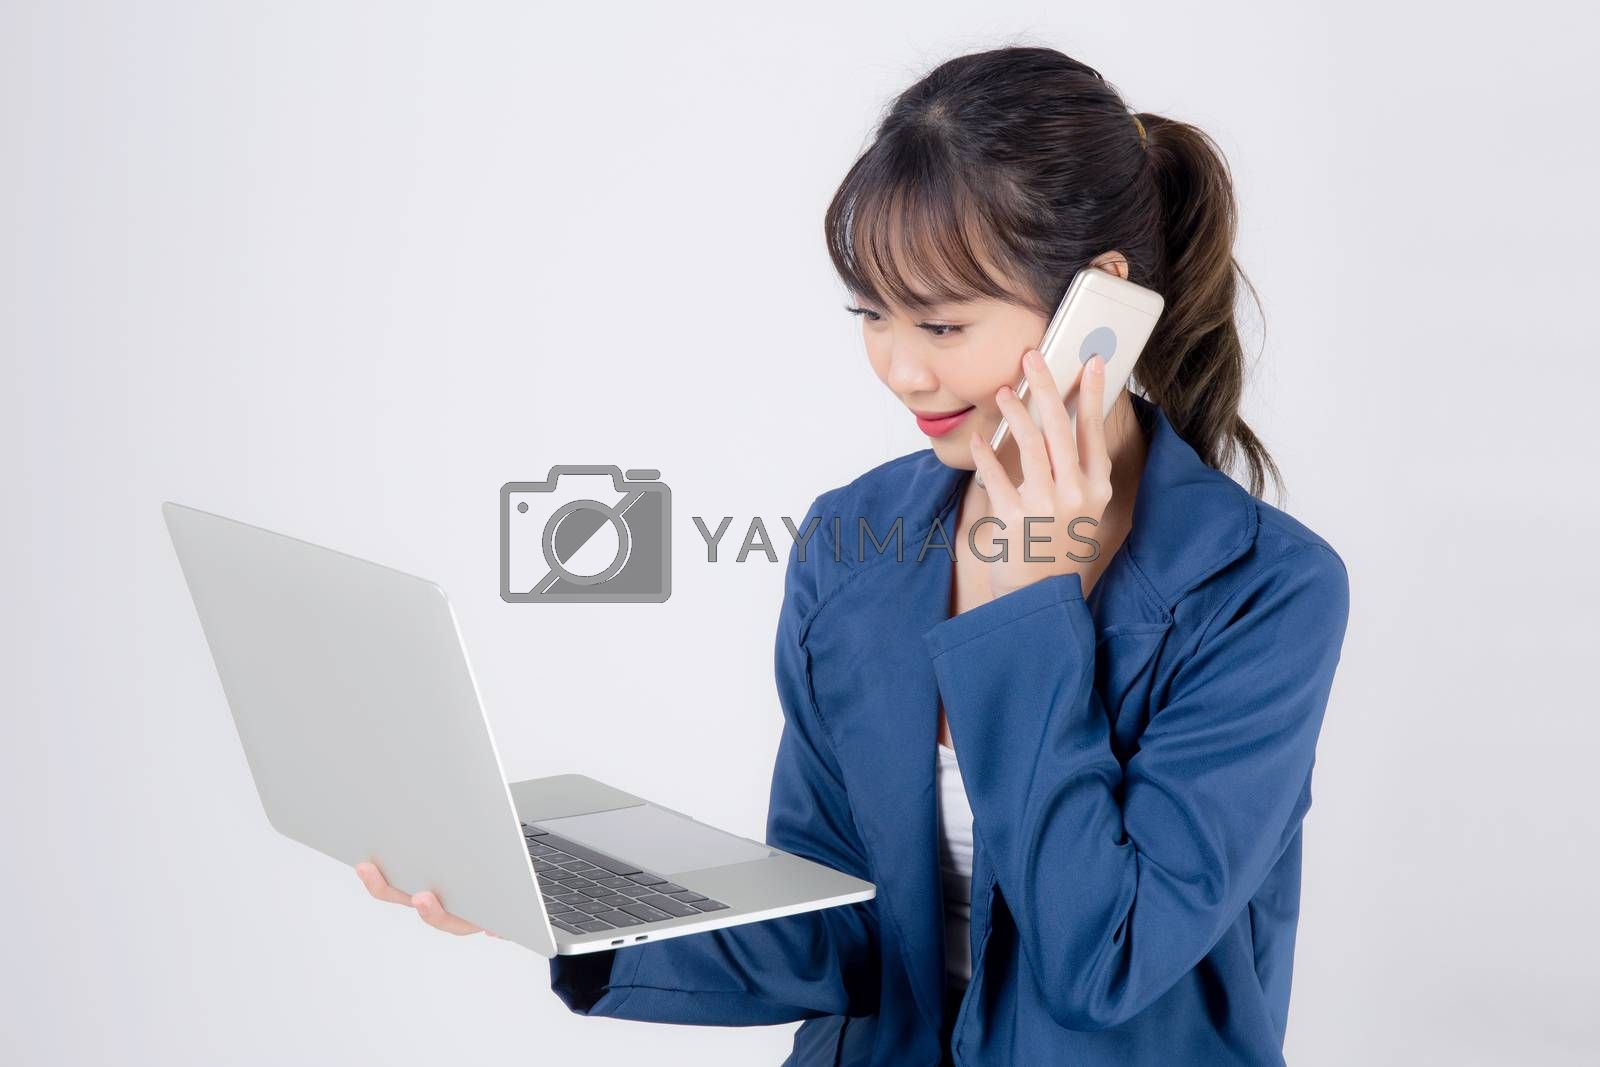 Beautiful portrait young asian business woman holding laptop computer and talking smart mobile phone isolated on white background, model businesswoman using notebook, communication concept.